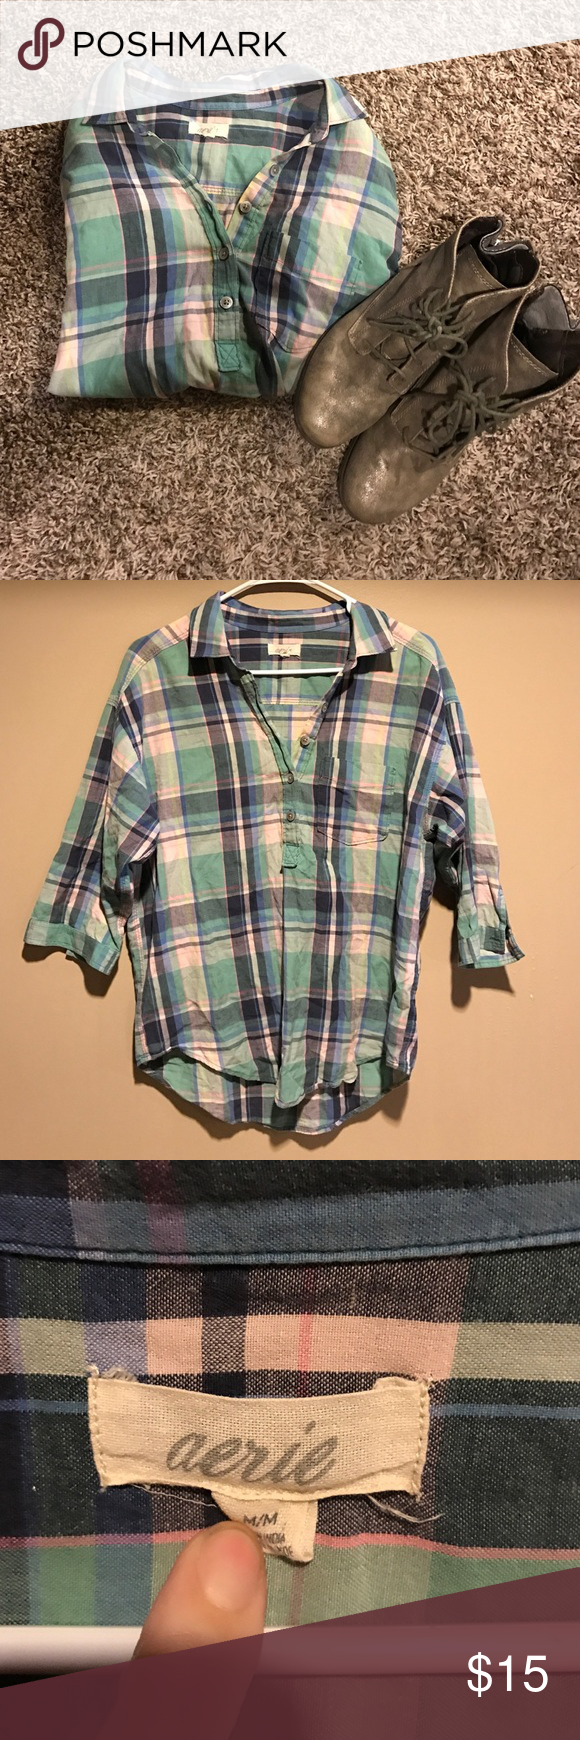 Flannel shirts yellow  Aerie flannel shirt Aerie flannel shirt with  length sleeves